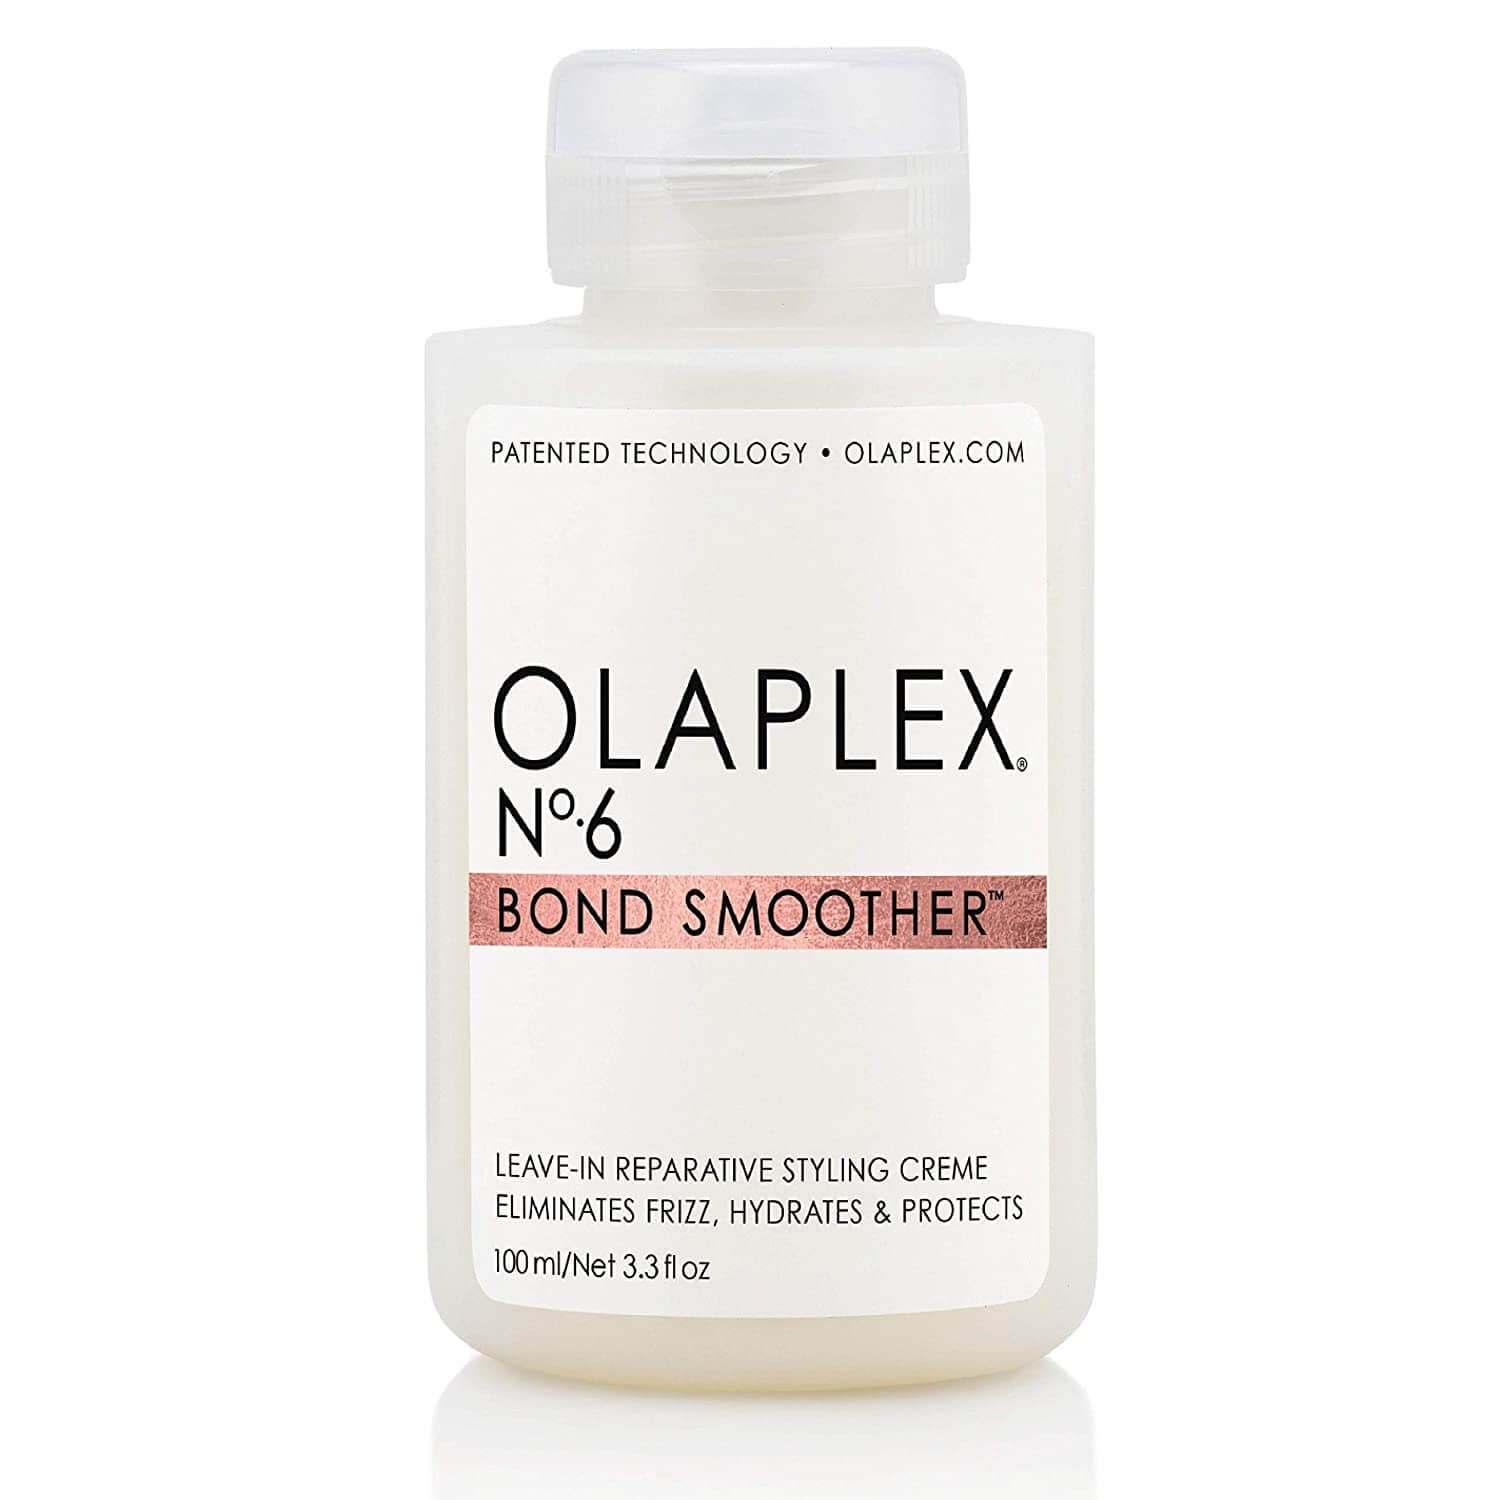 Olaplex No.6